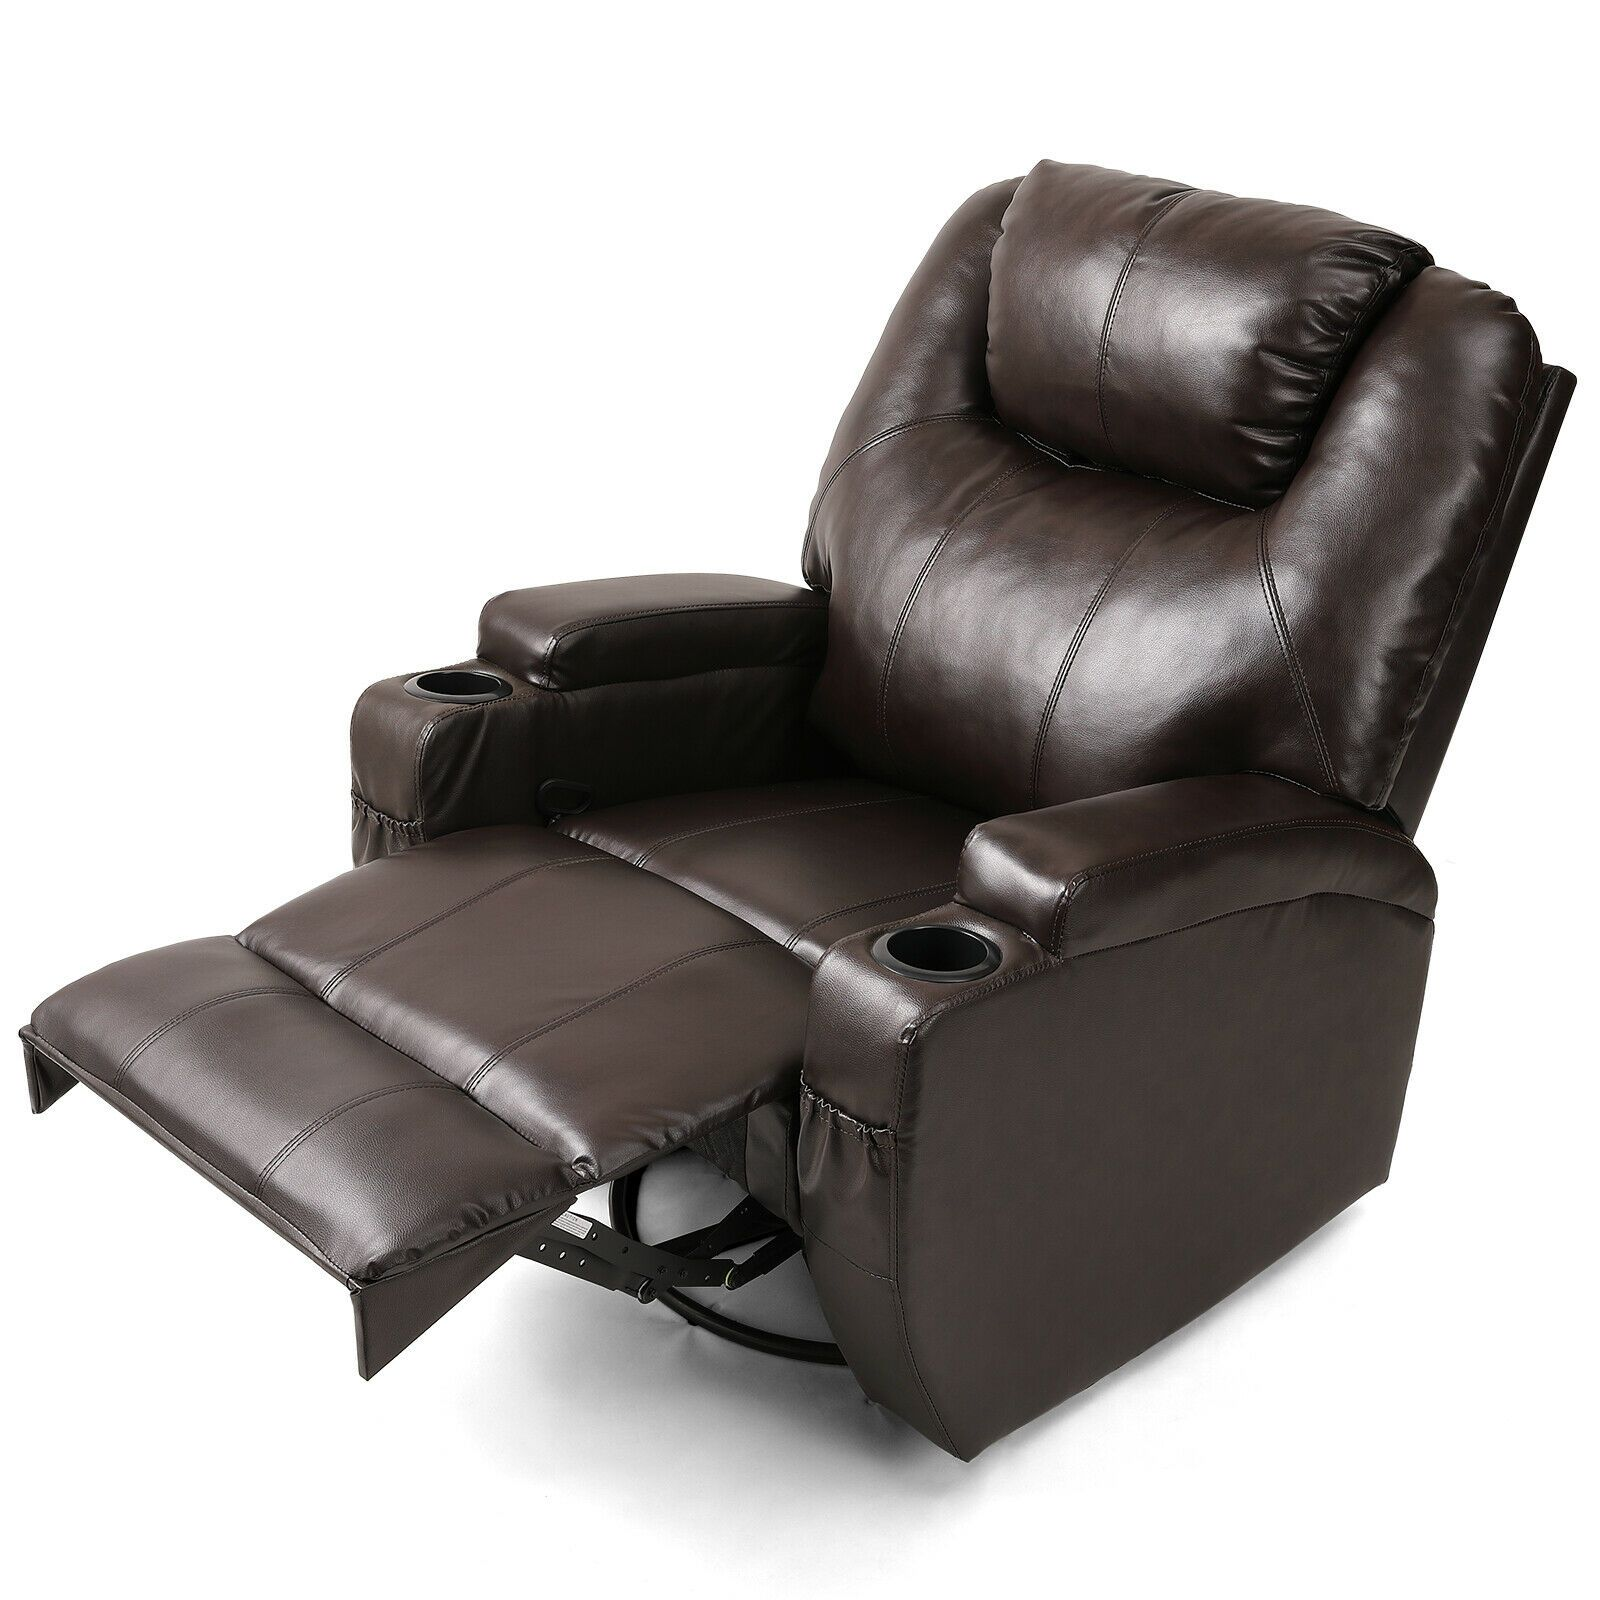 Massage Chair Recliner Leather Vibrating Heat Sofa Lounge